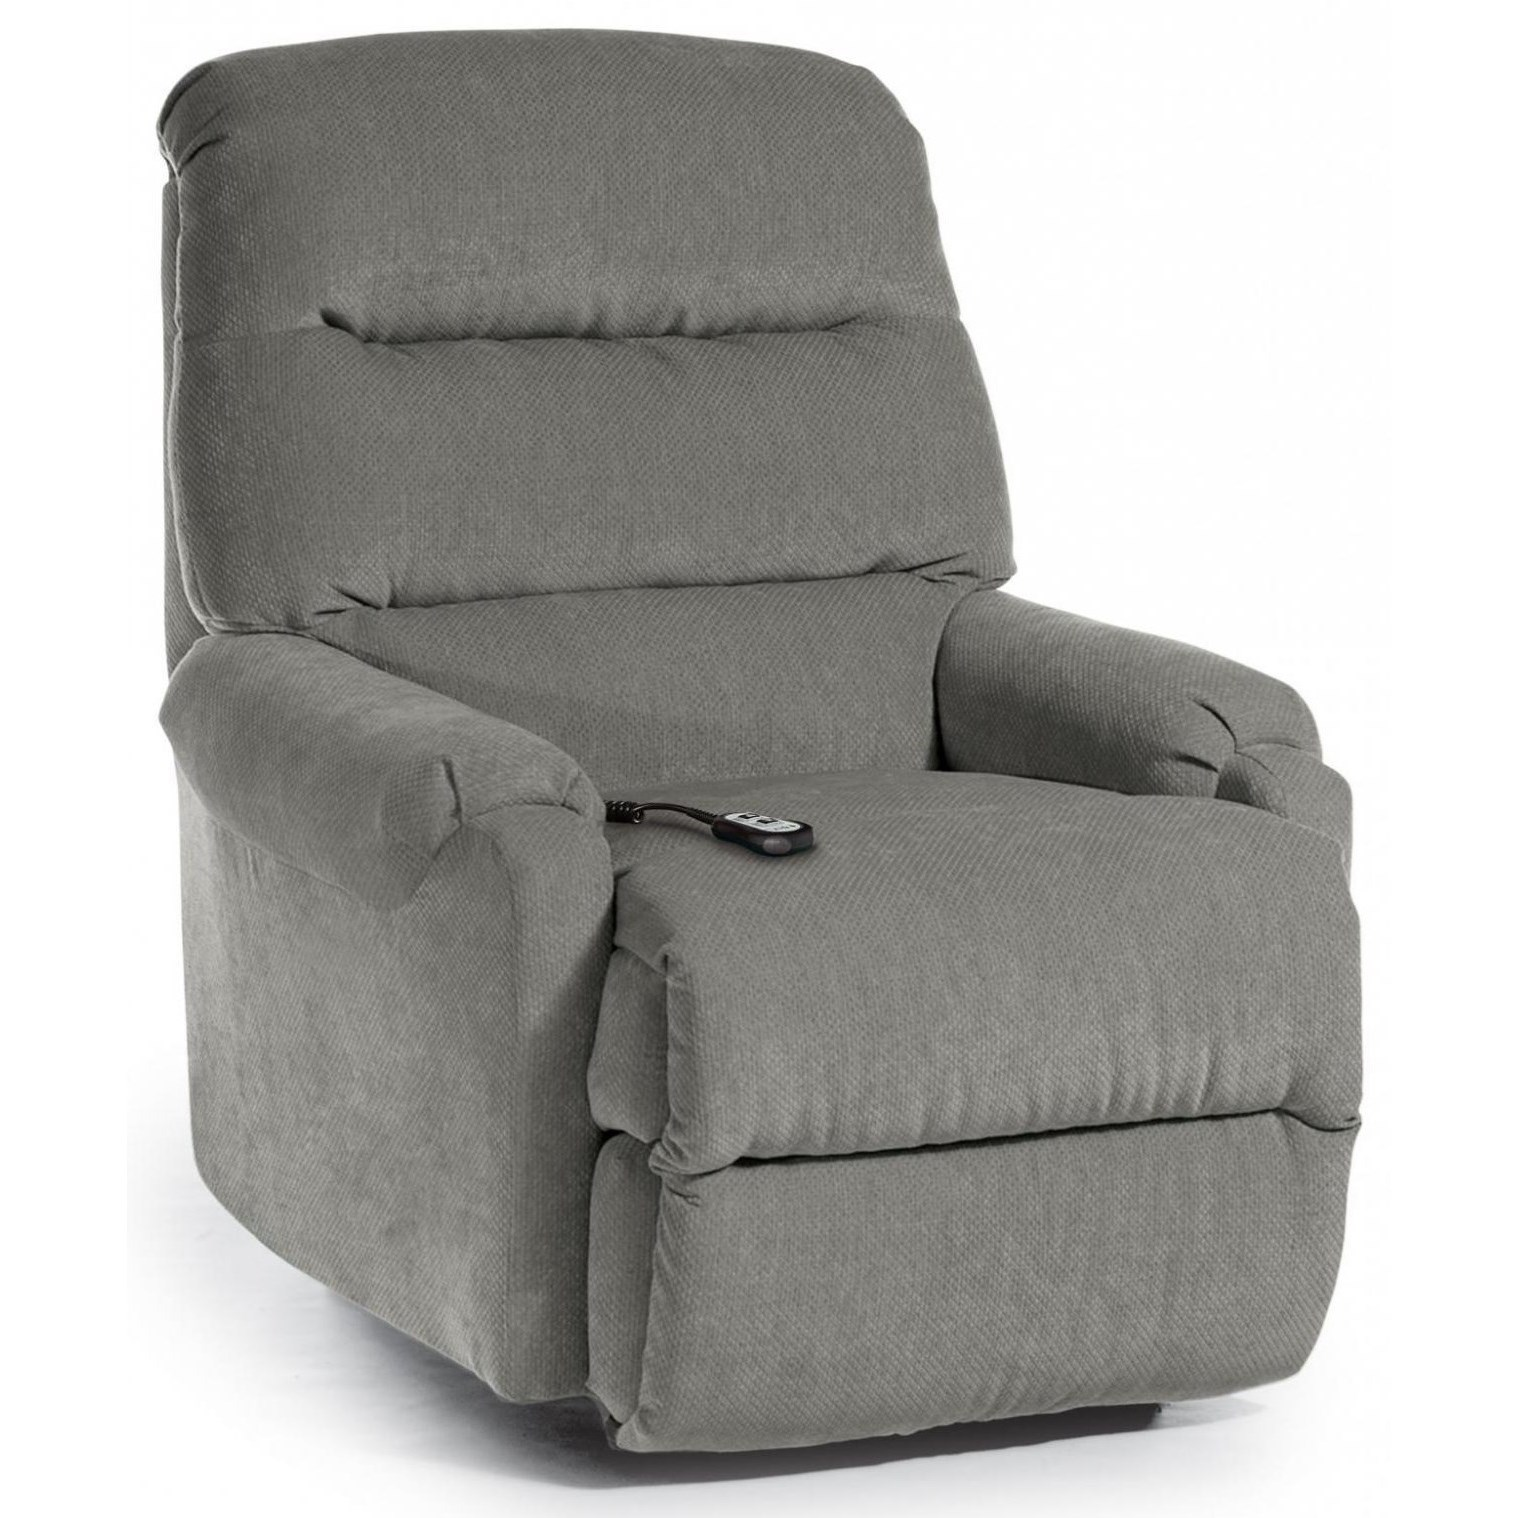 Petite Recliners Sedgefield Pwr Lift Recliner w/ Pwr Headrest by Best Home Furnishings at Mueller Furniture